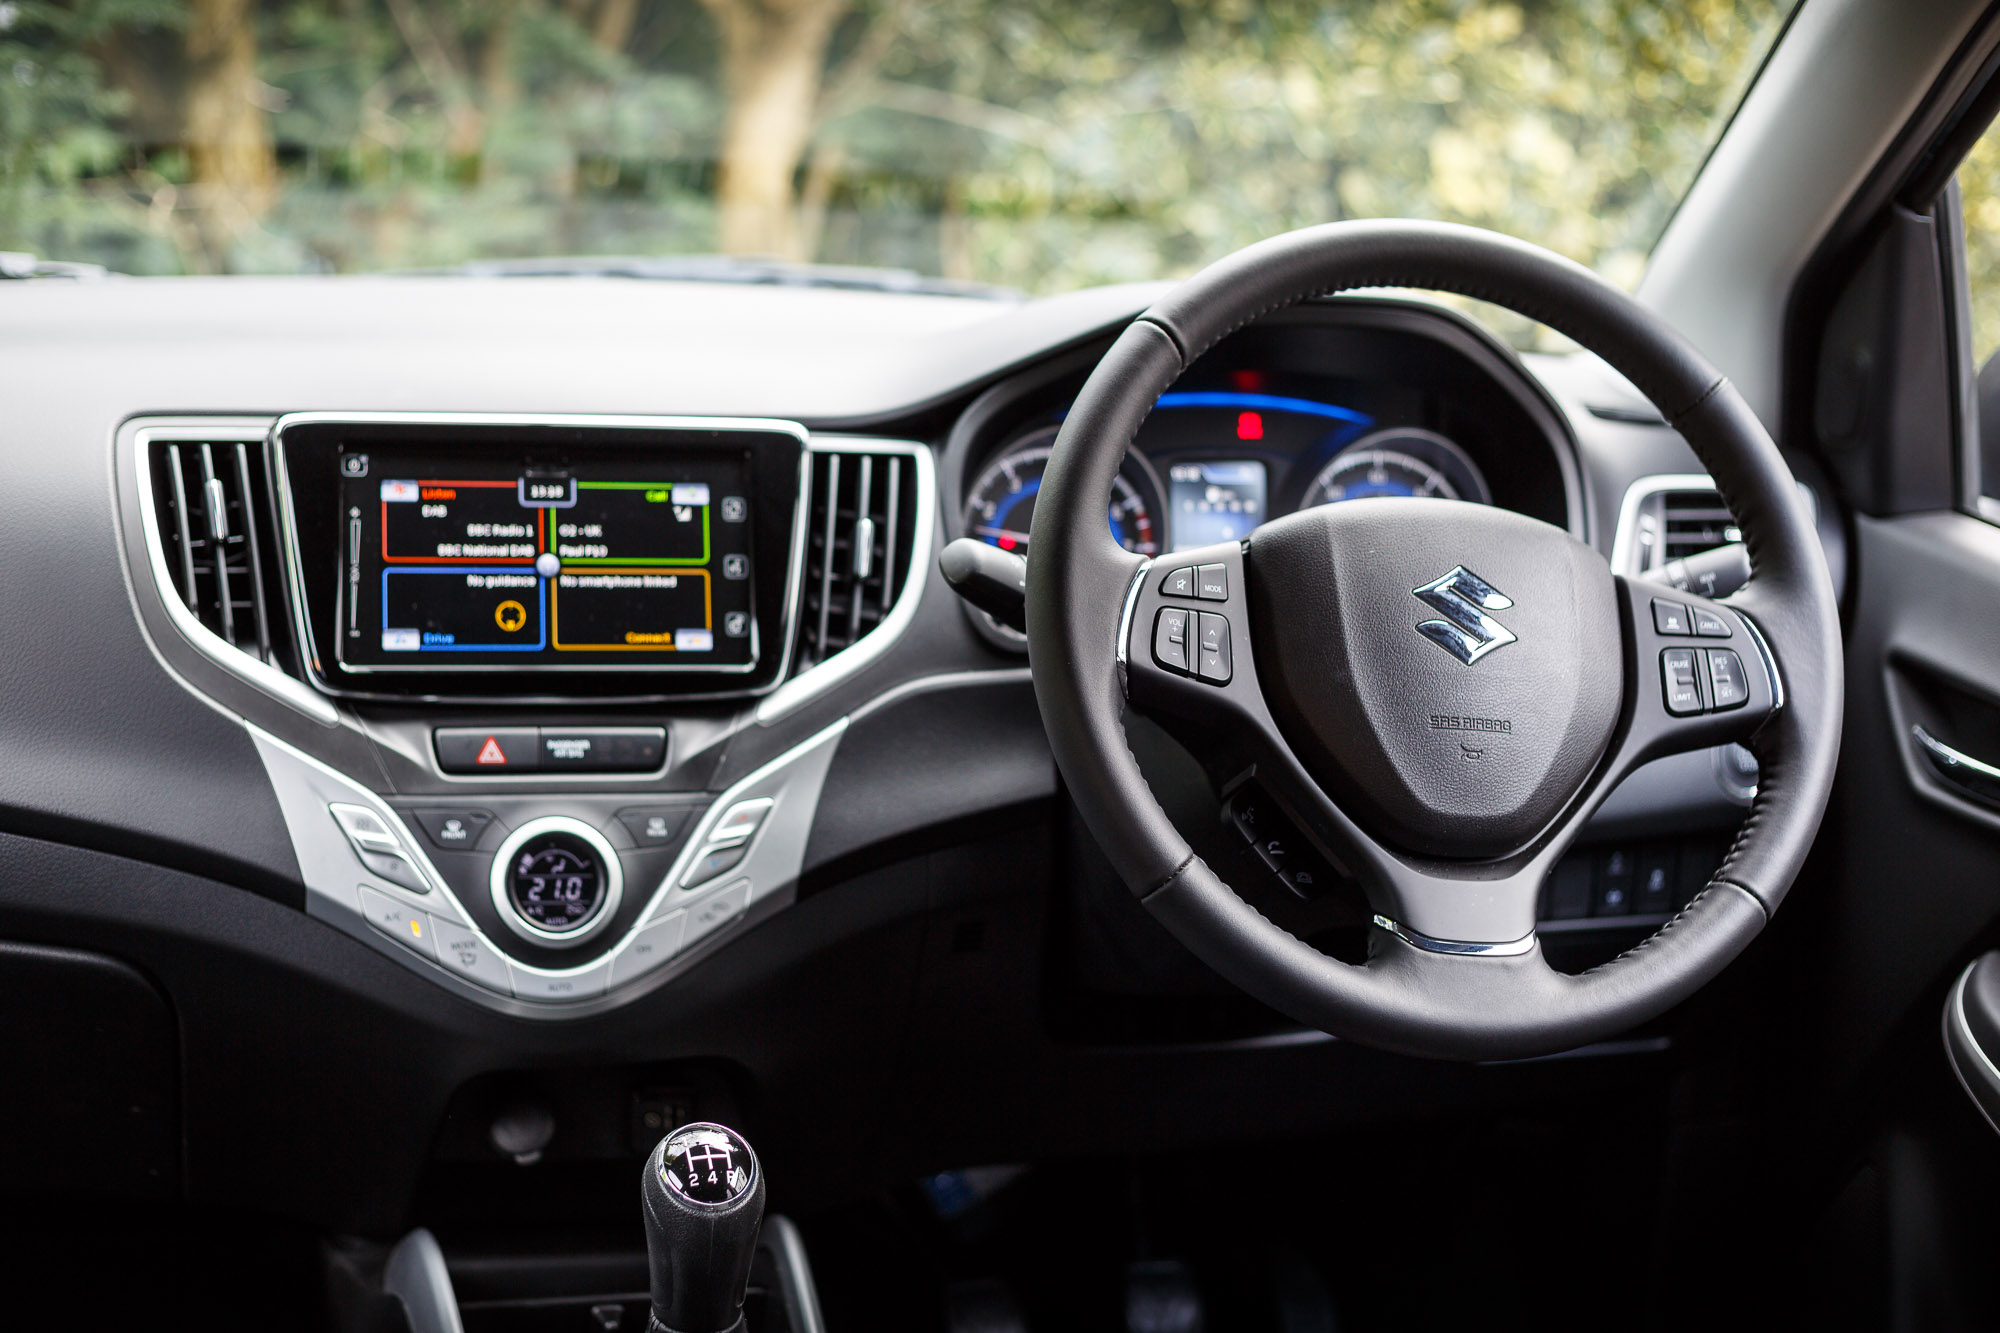 Image result for interior baleno 2018 hd